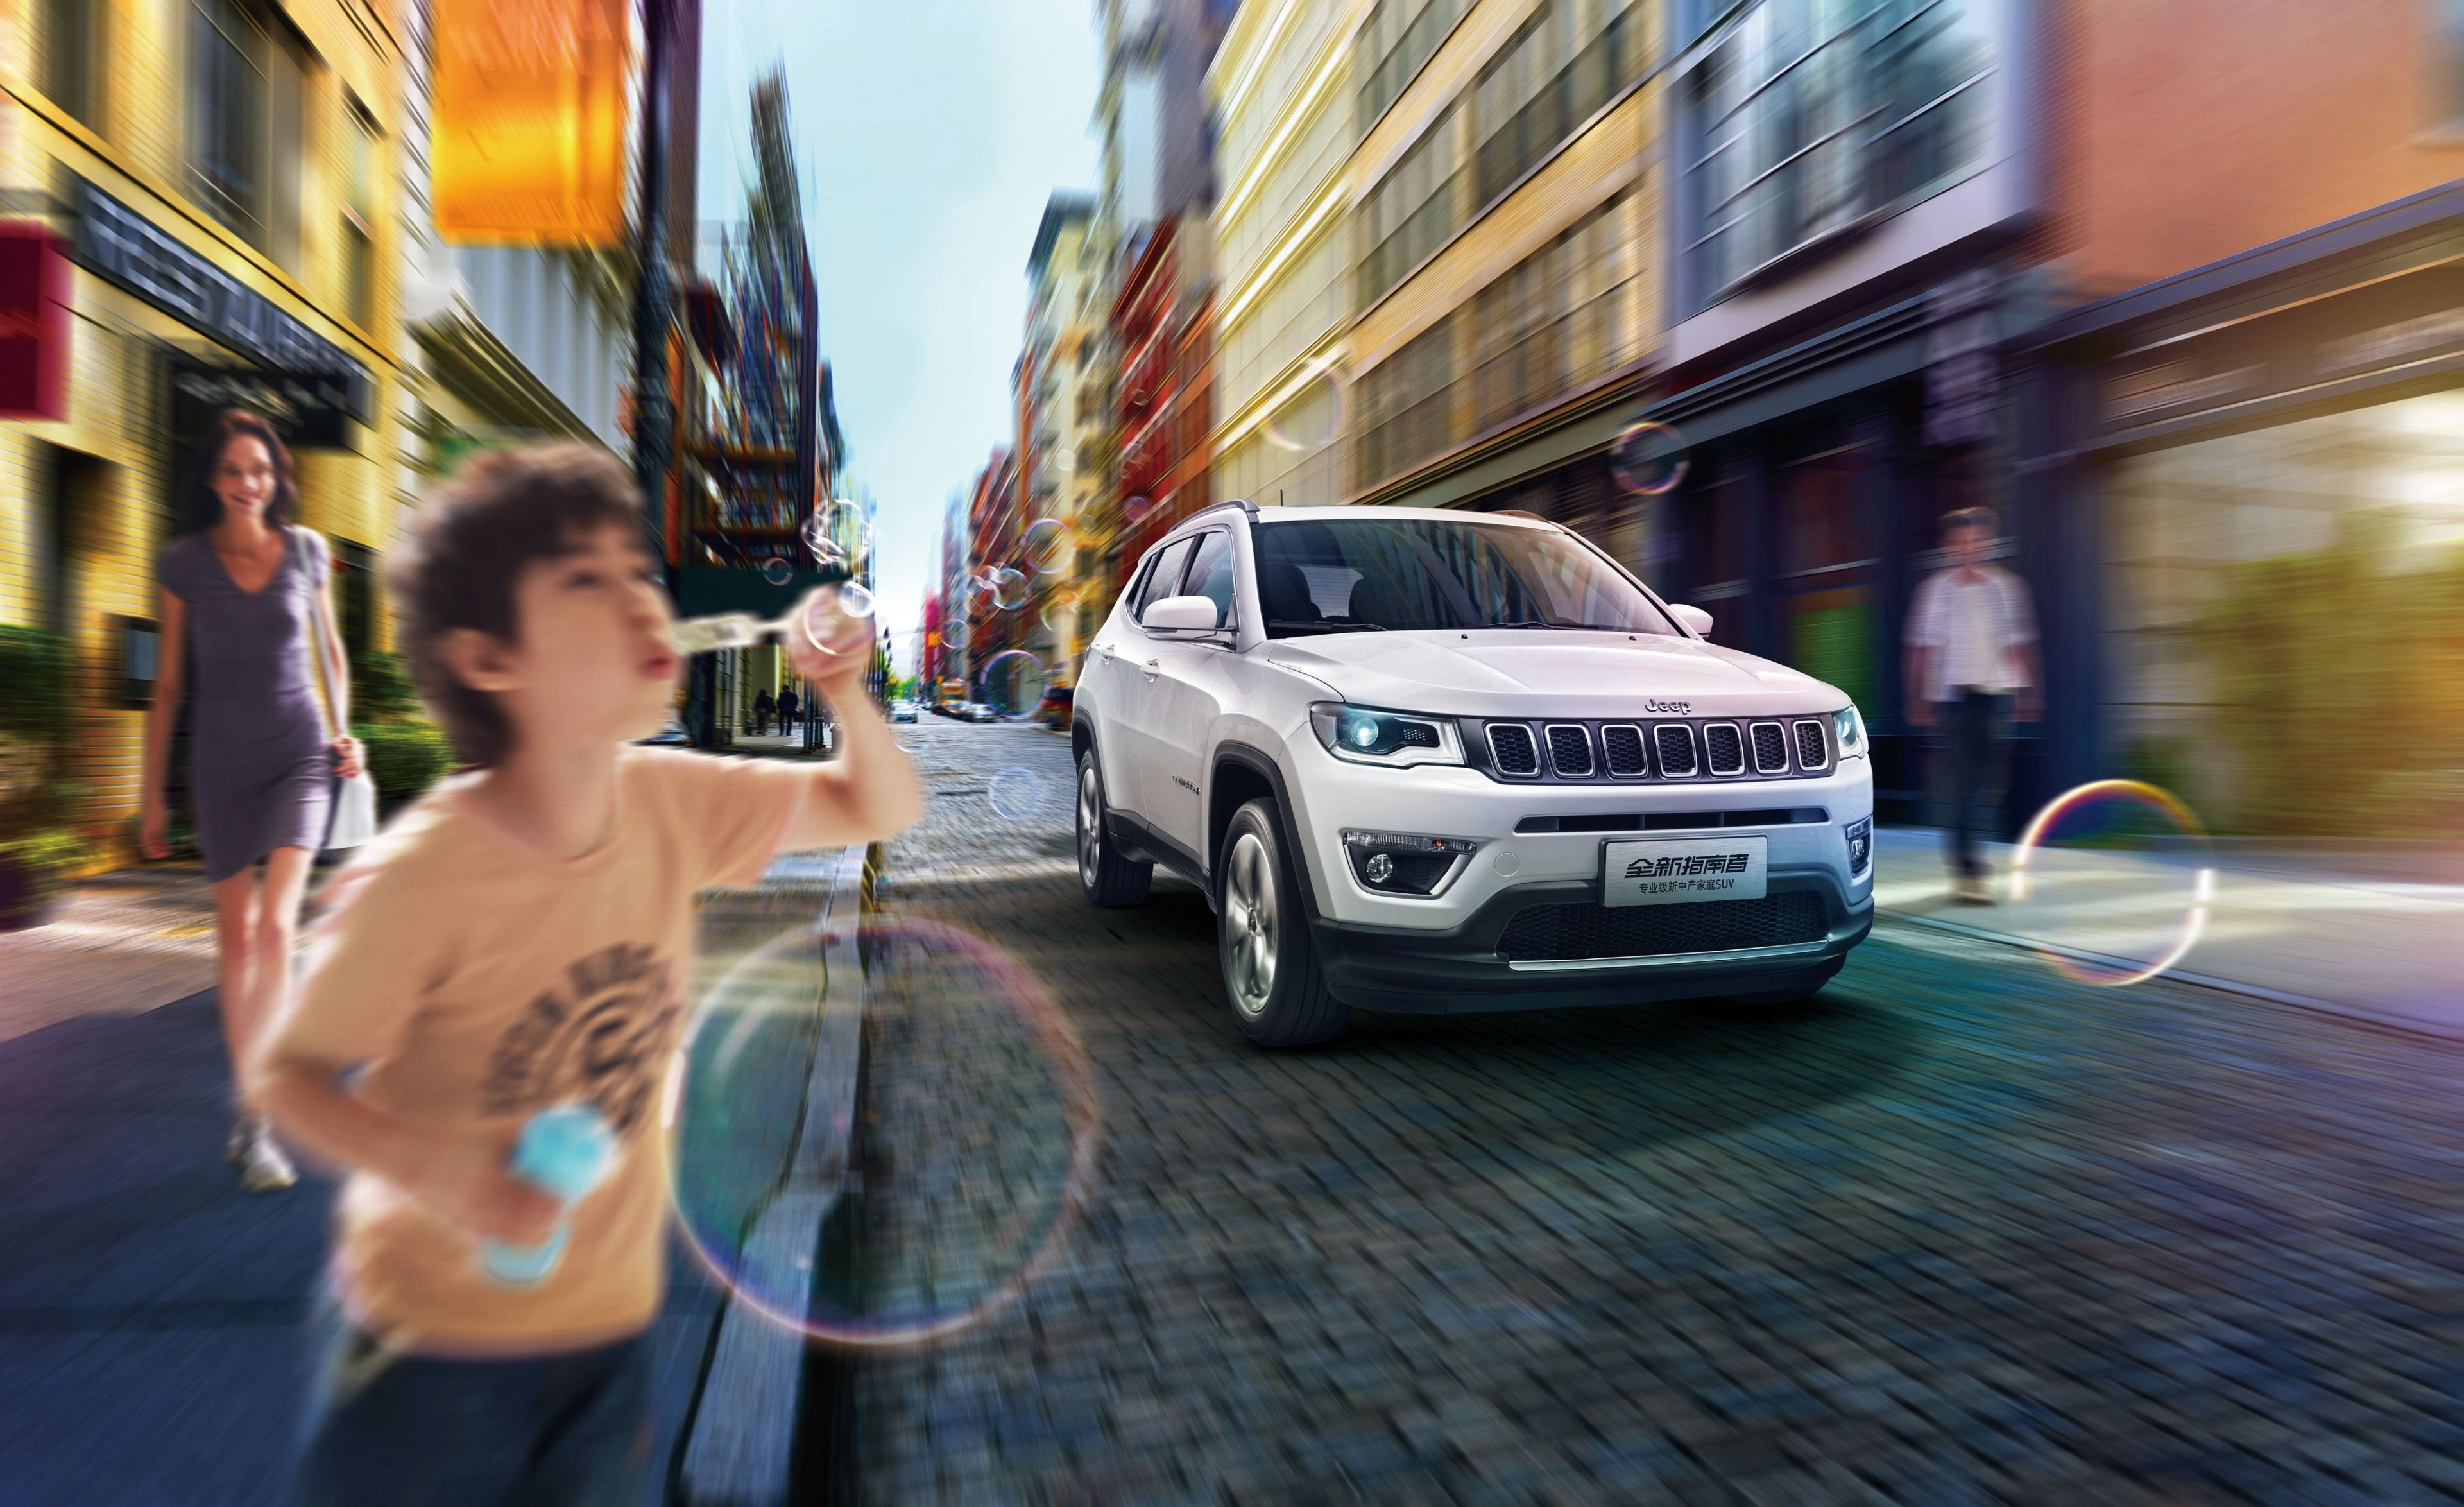 3840x2348 Jeep Compass Limited 4k New Image Wallpaper